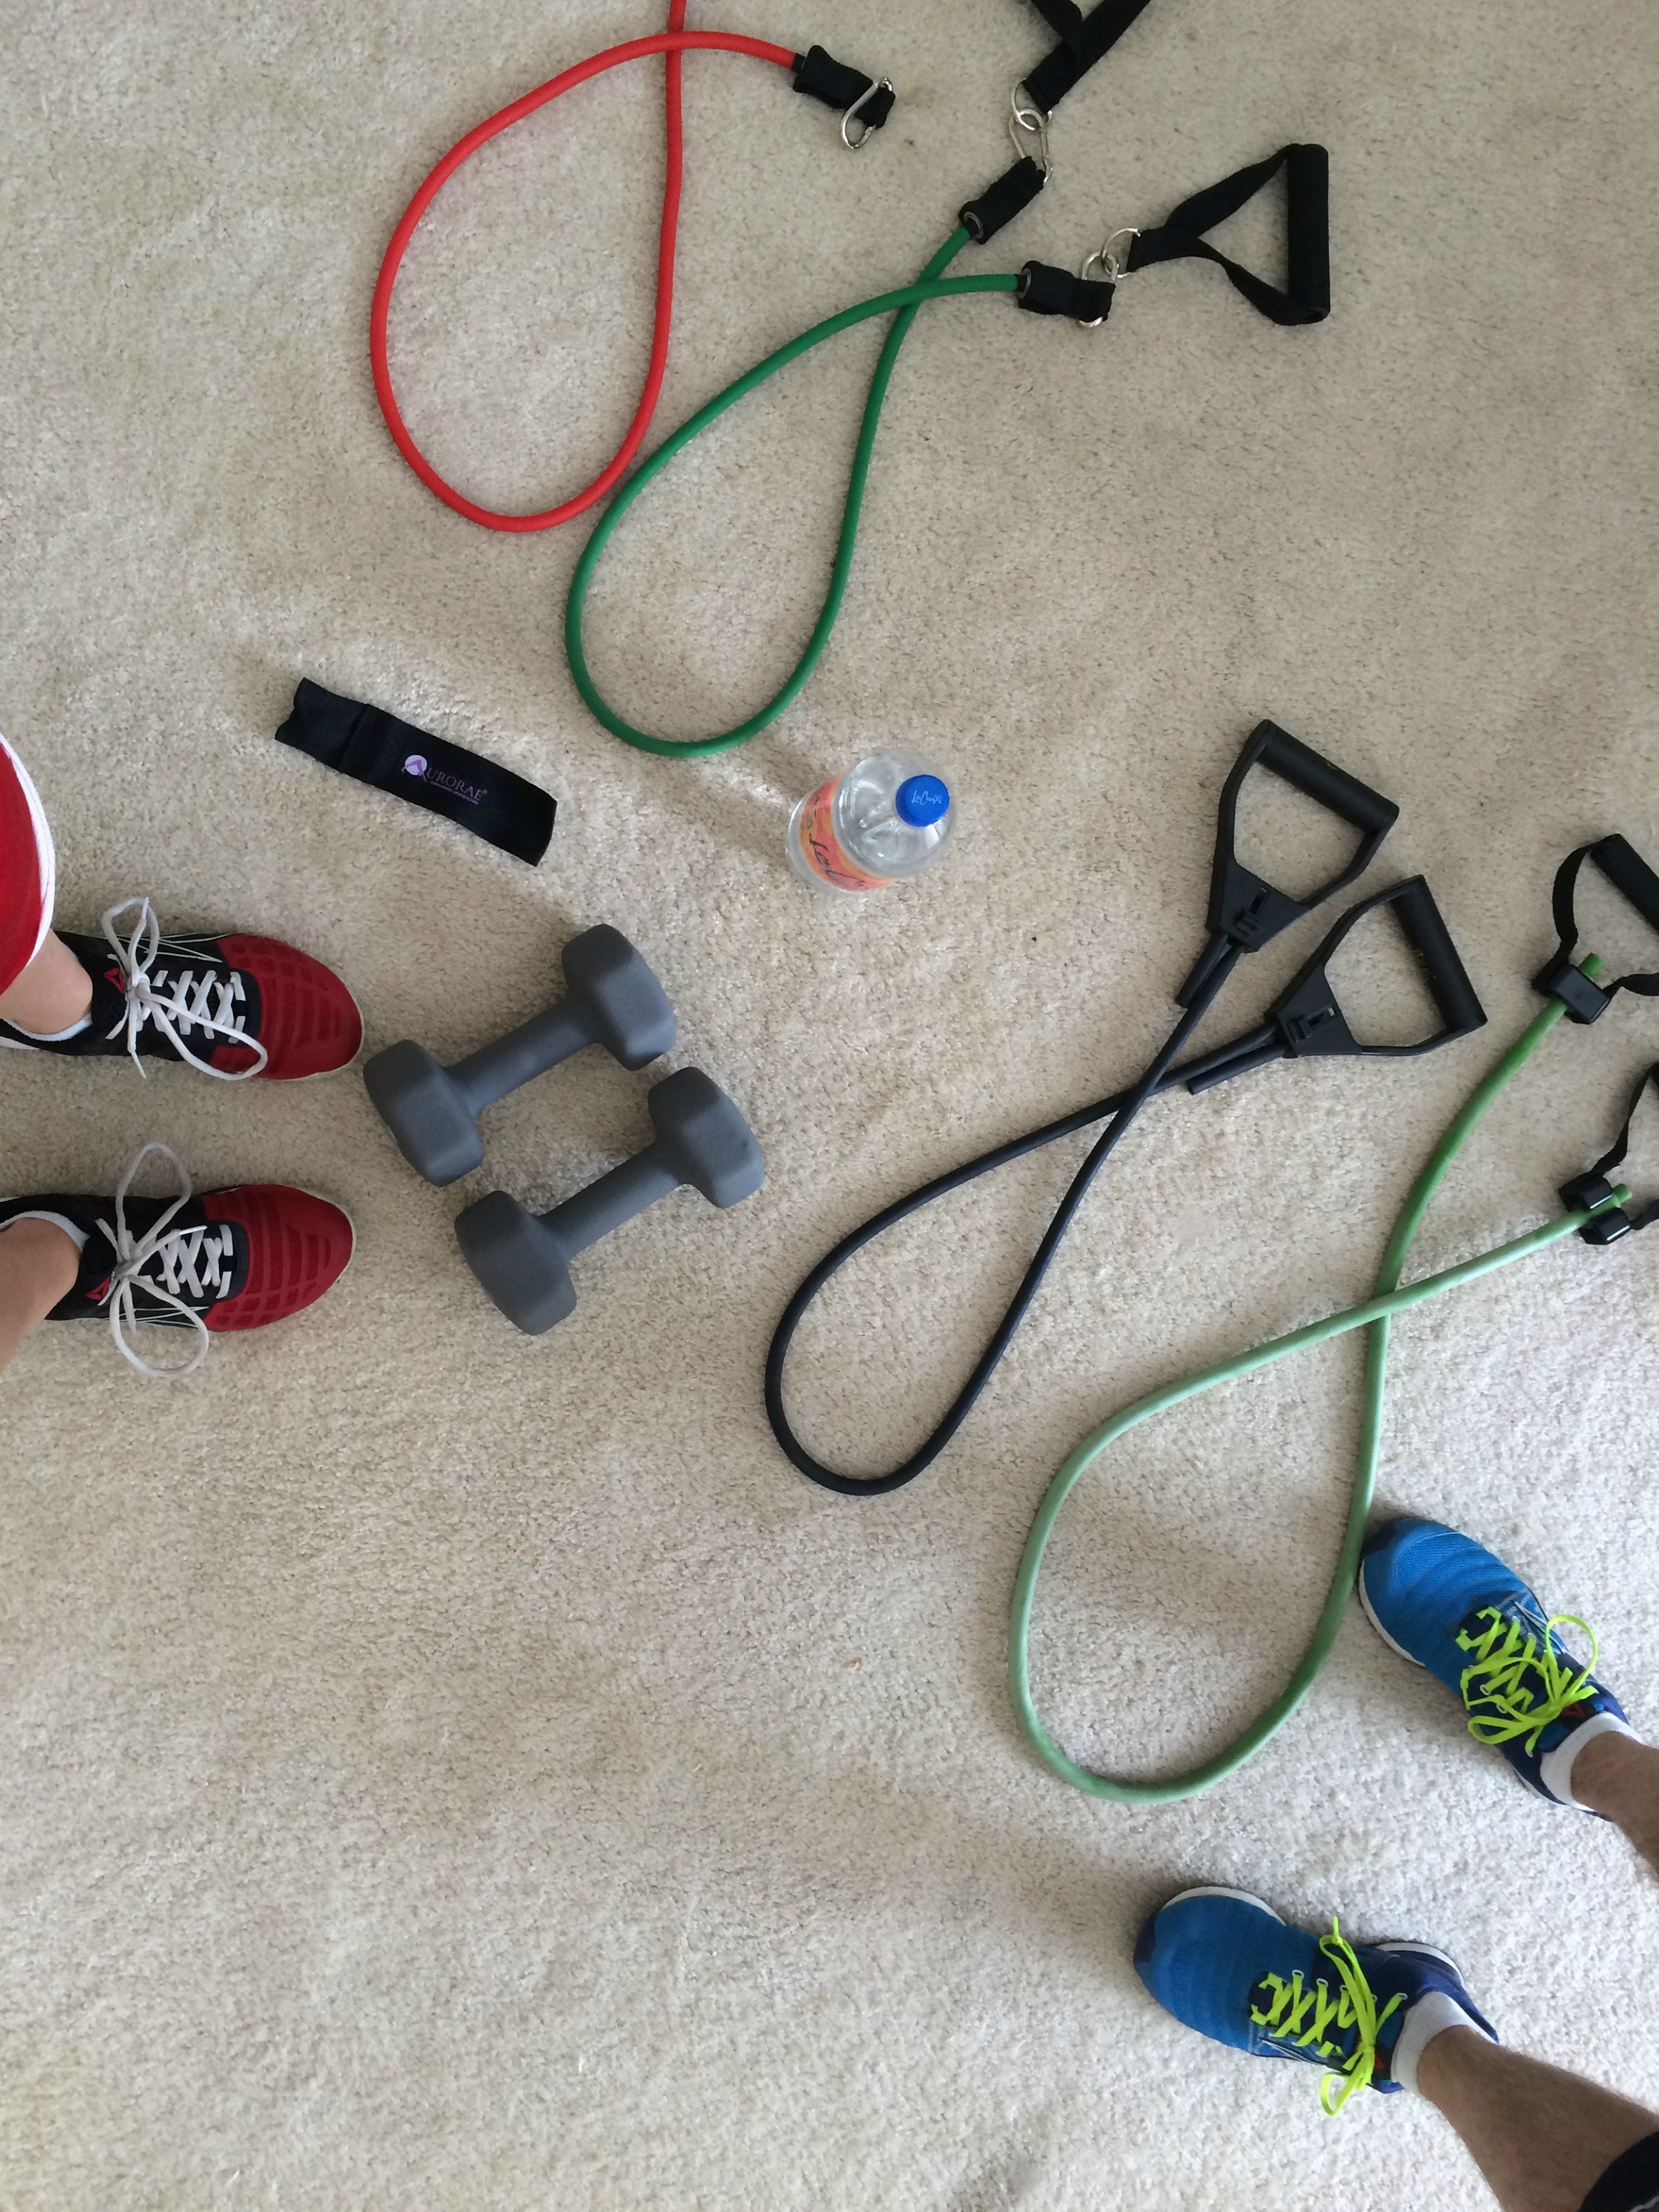 p90x workout with resistance bands and weights